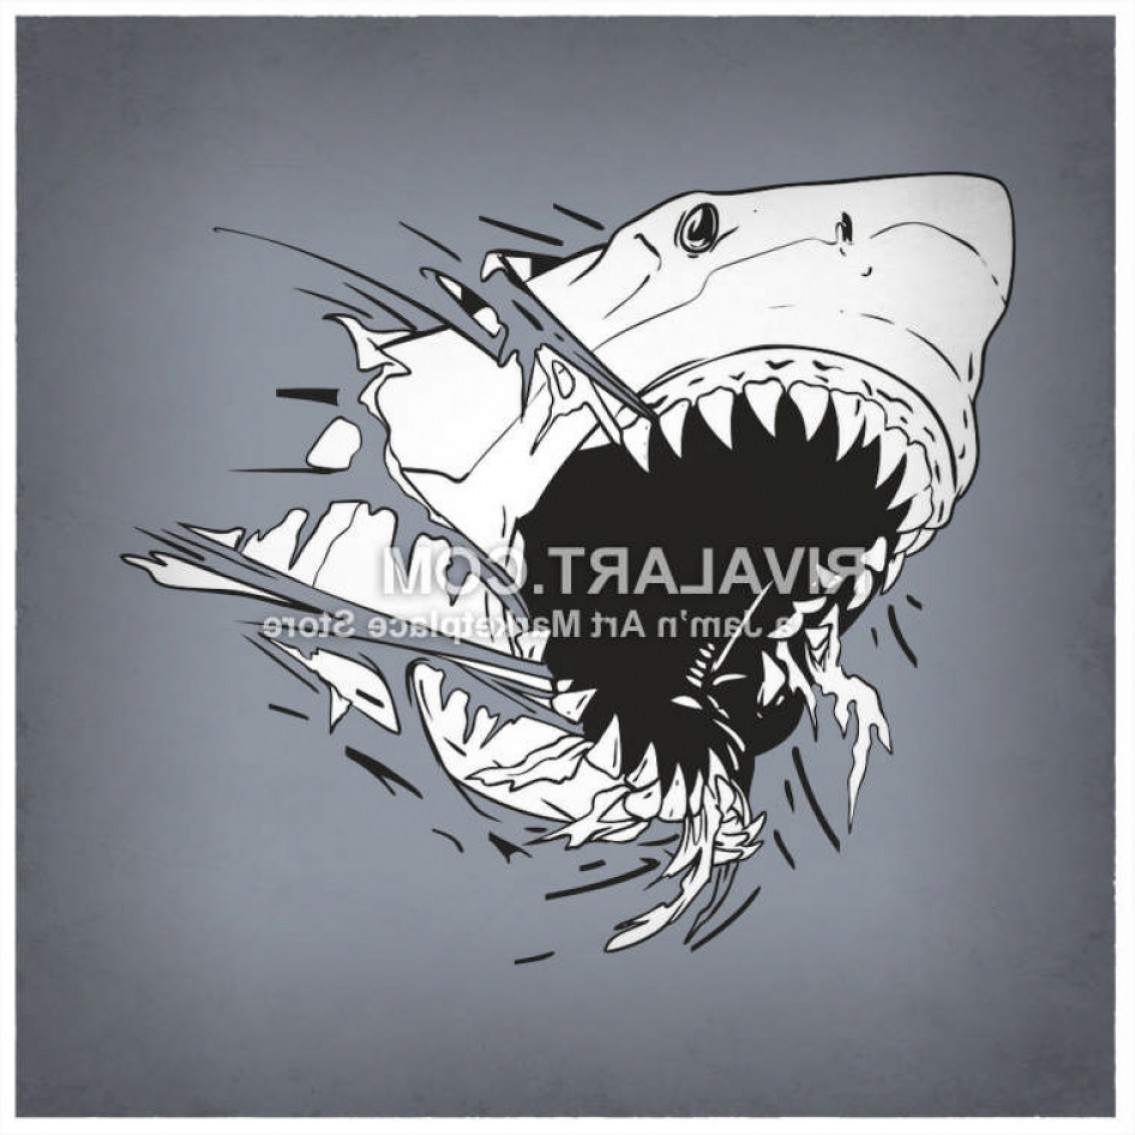 Bull Shark Jaws Vector Art: Vector Clipart Of Shark Shredding Graphic